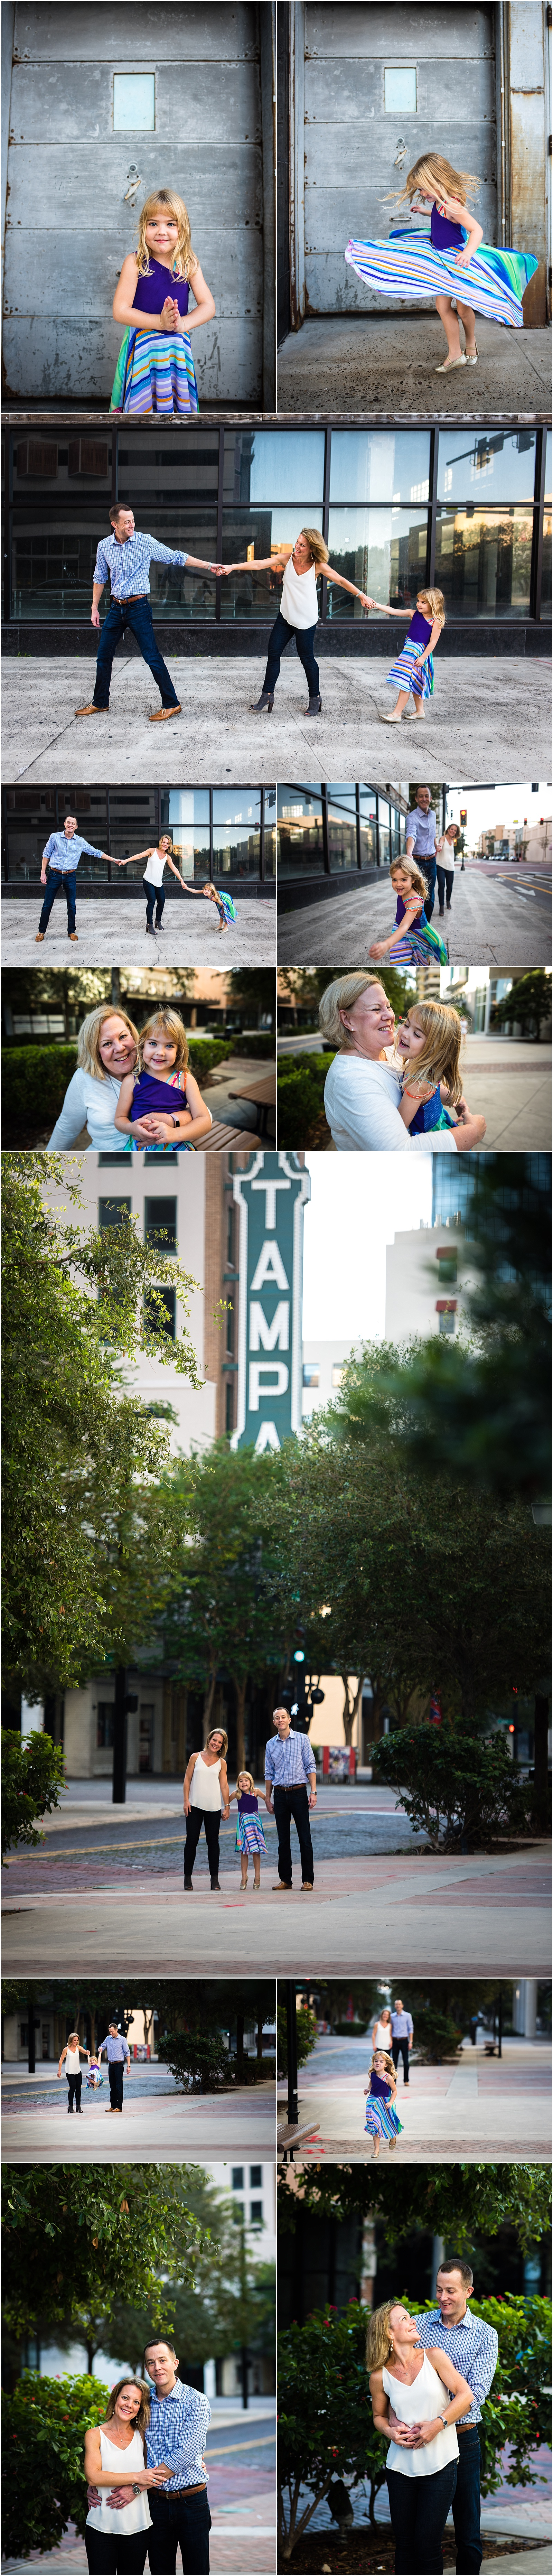 Downtown Tampa Photoshoot 2.jpg